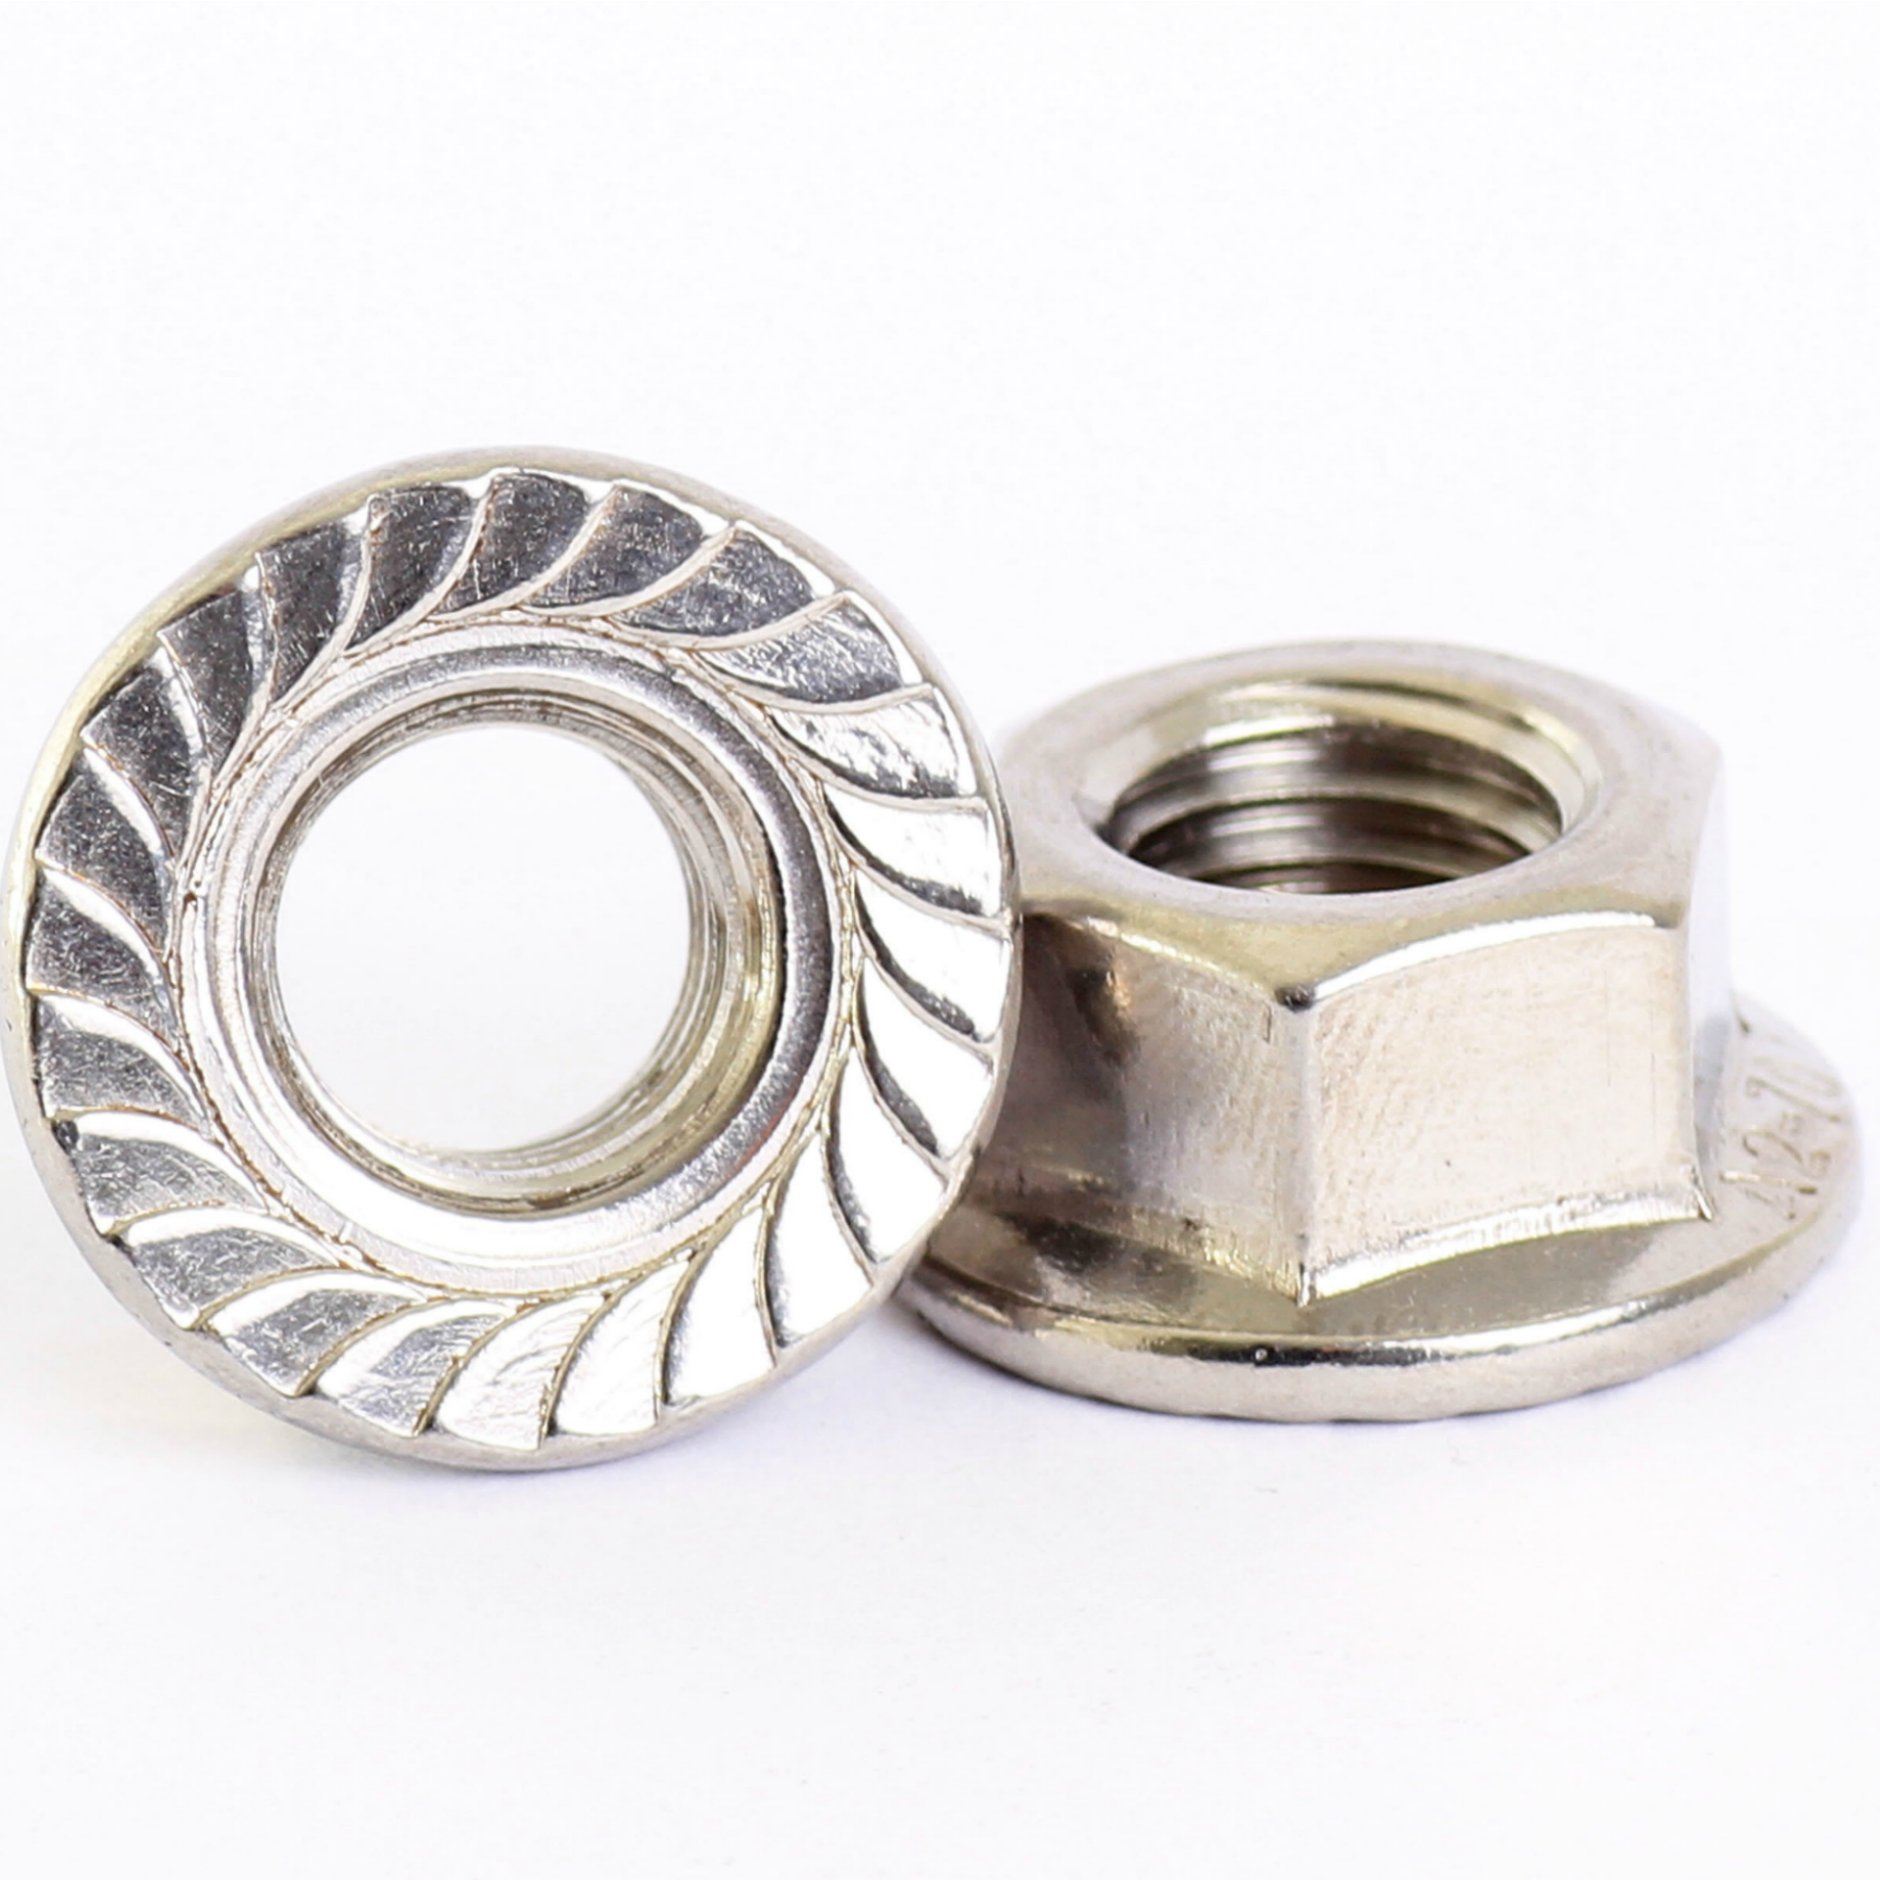 Bolt Base A2 Stainless Steel Hex Serrated Flange Nuts Flanged Nuts M10 X 1.50mm Pitch - 100